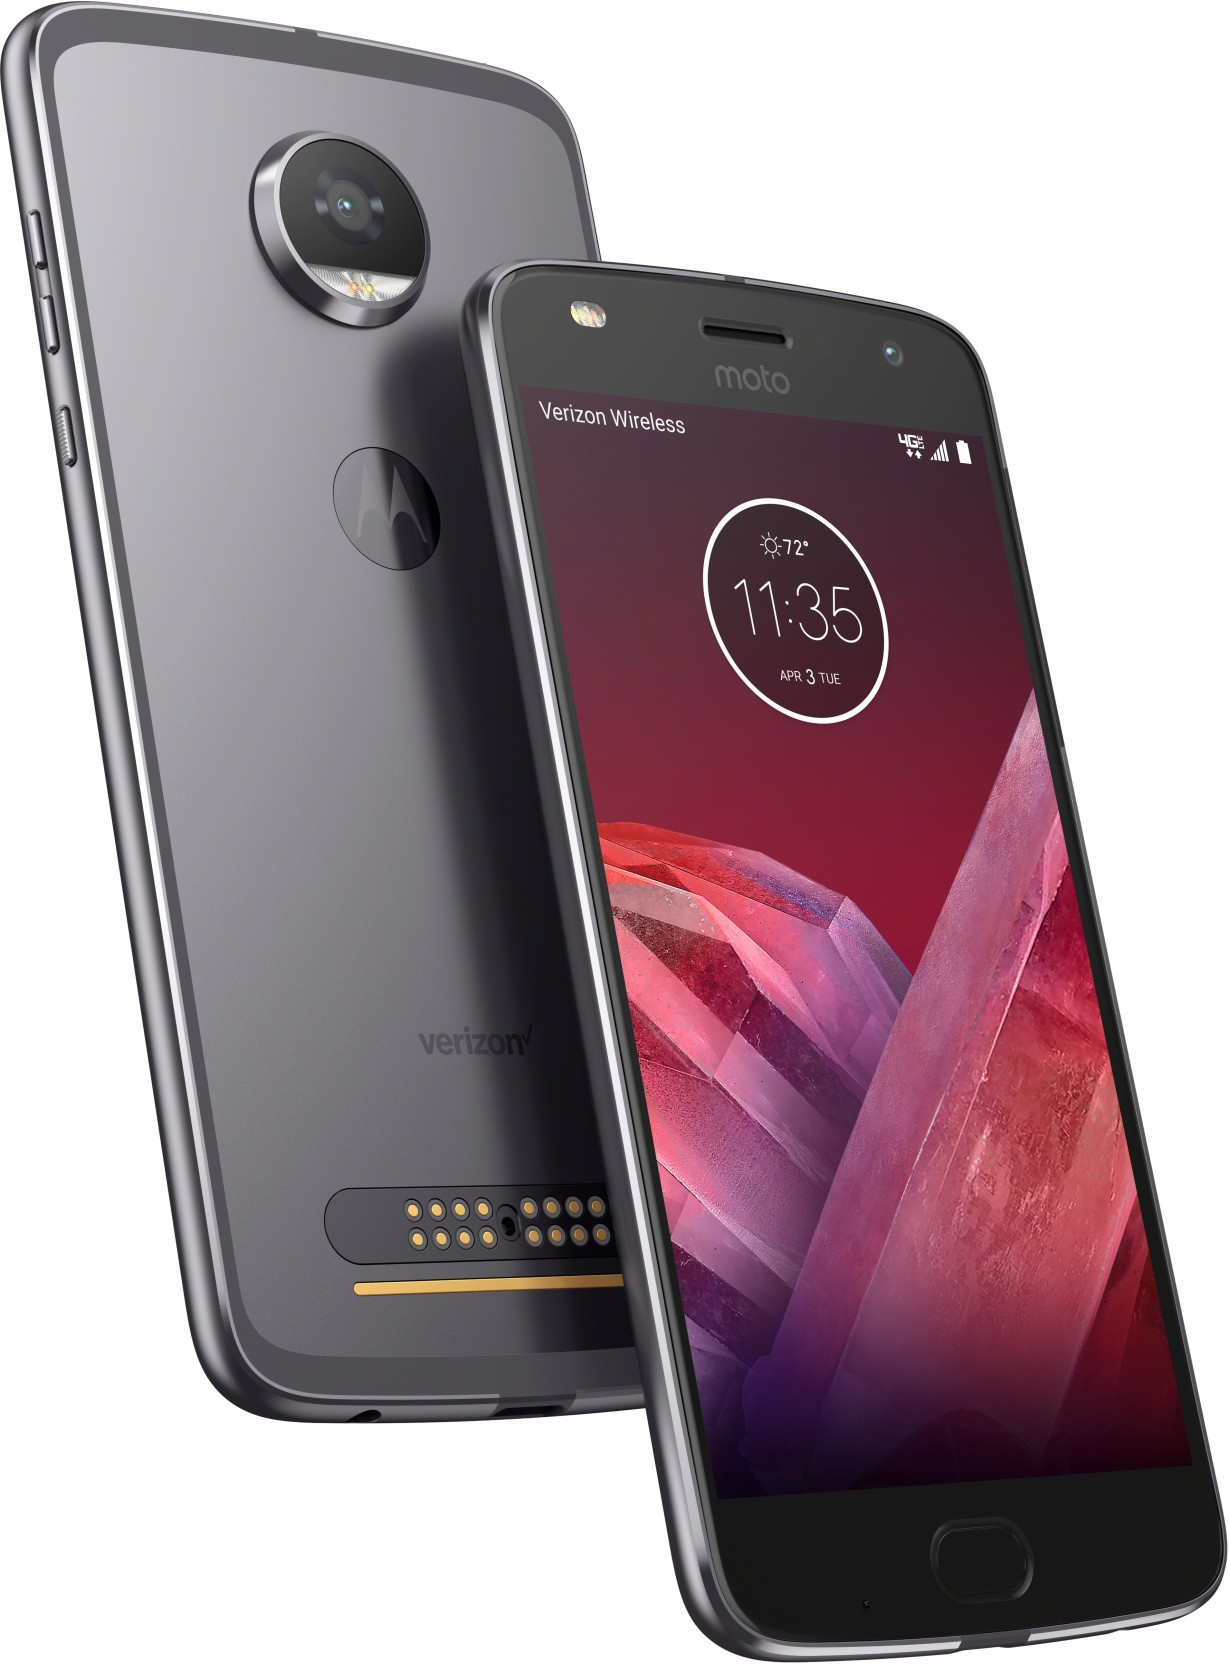 Moto Z2 Play 13 Mp Camera 4gb Ram Moto Voice Price Rs